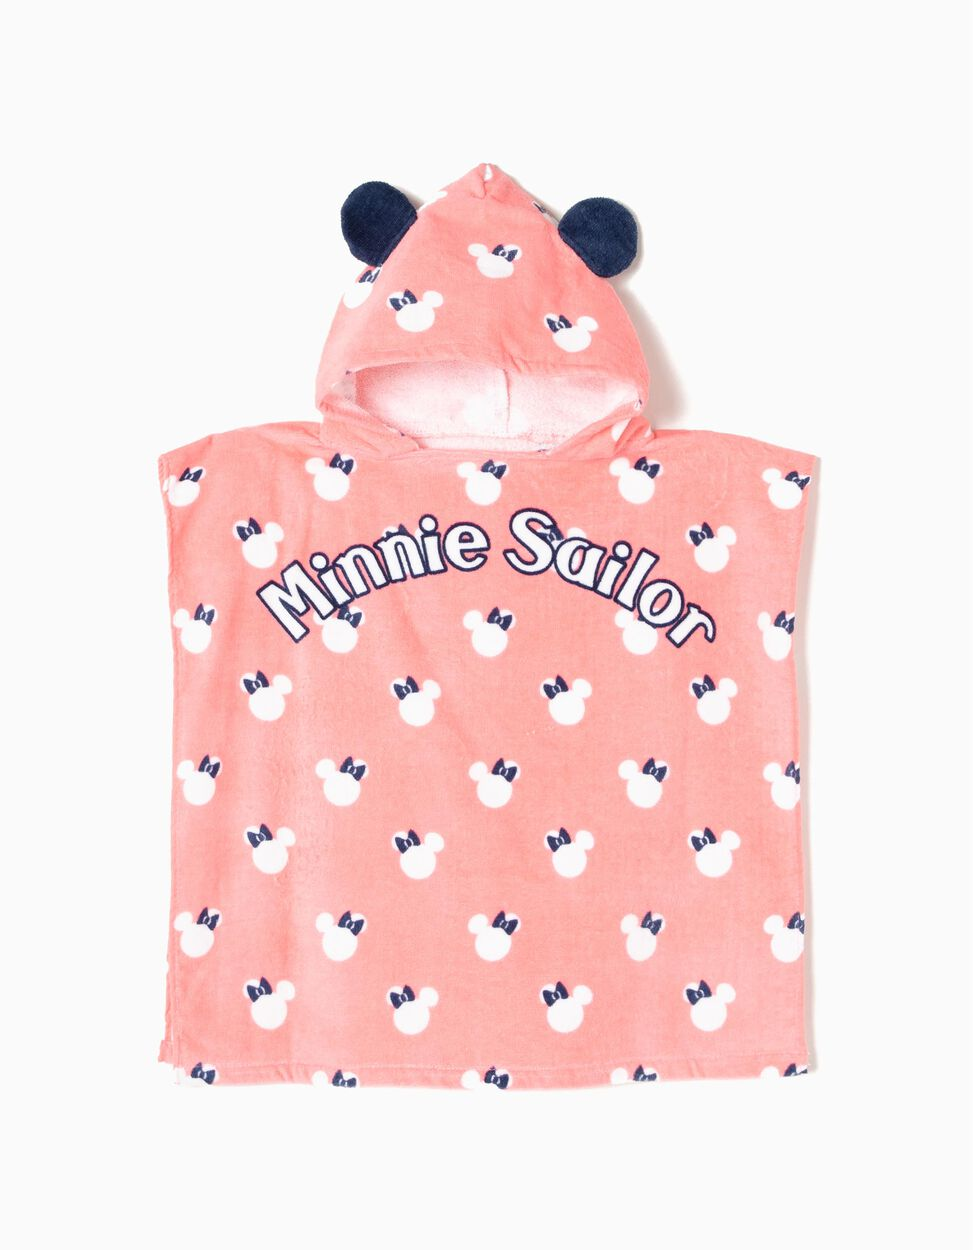 Poncho de Praia Minnie Sailor